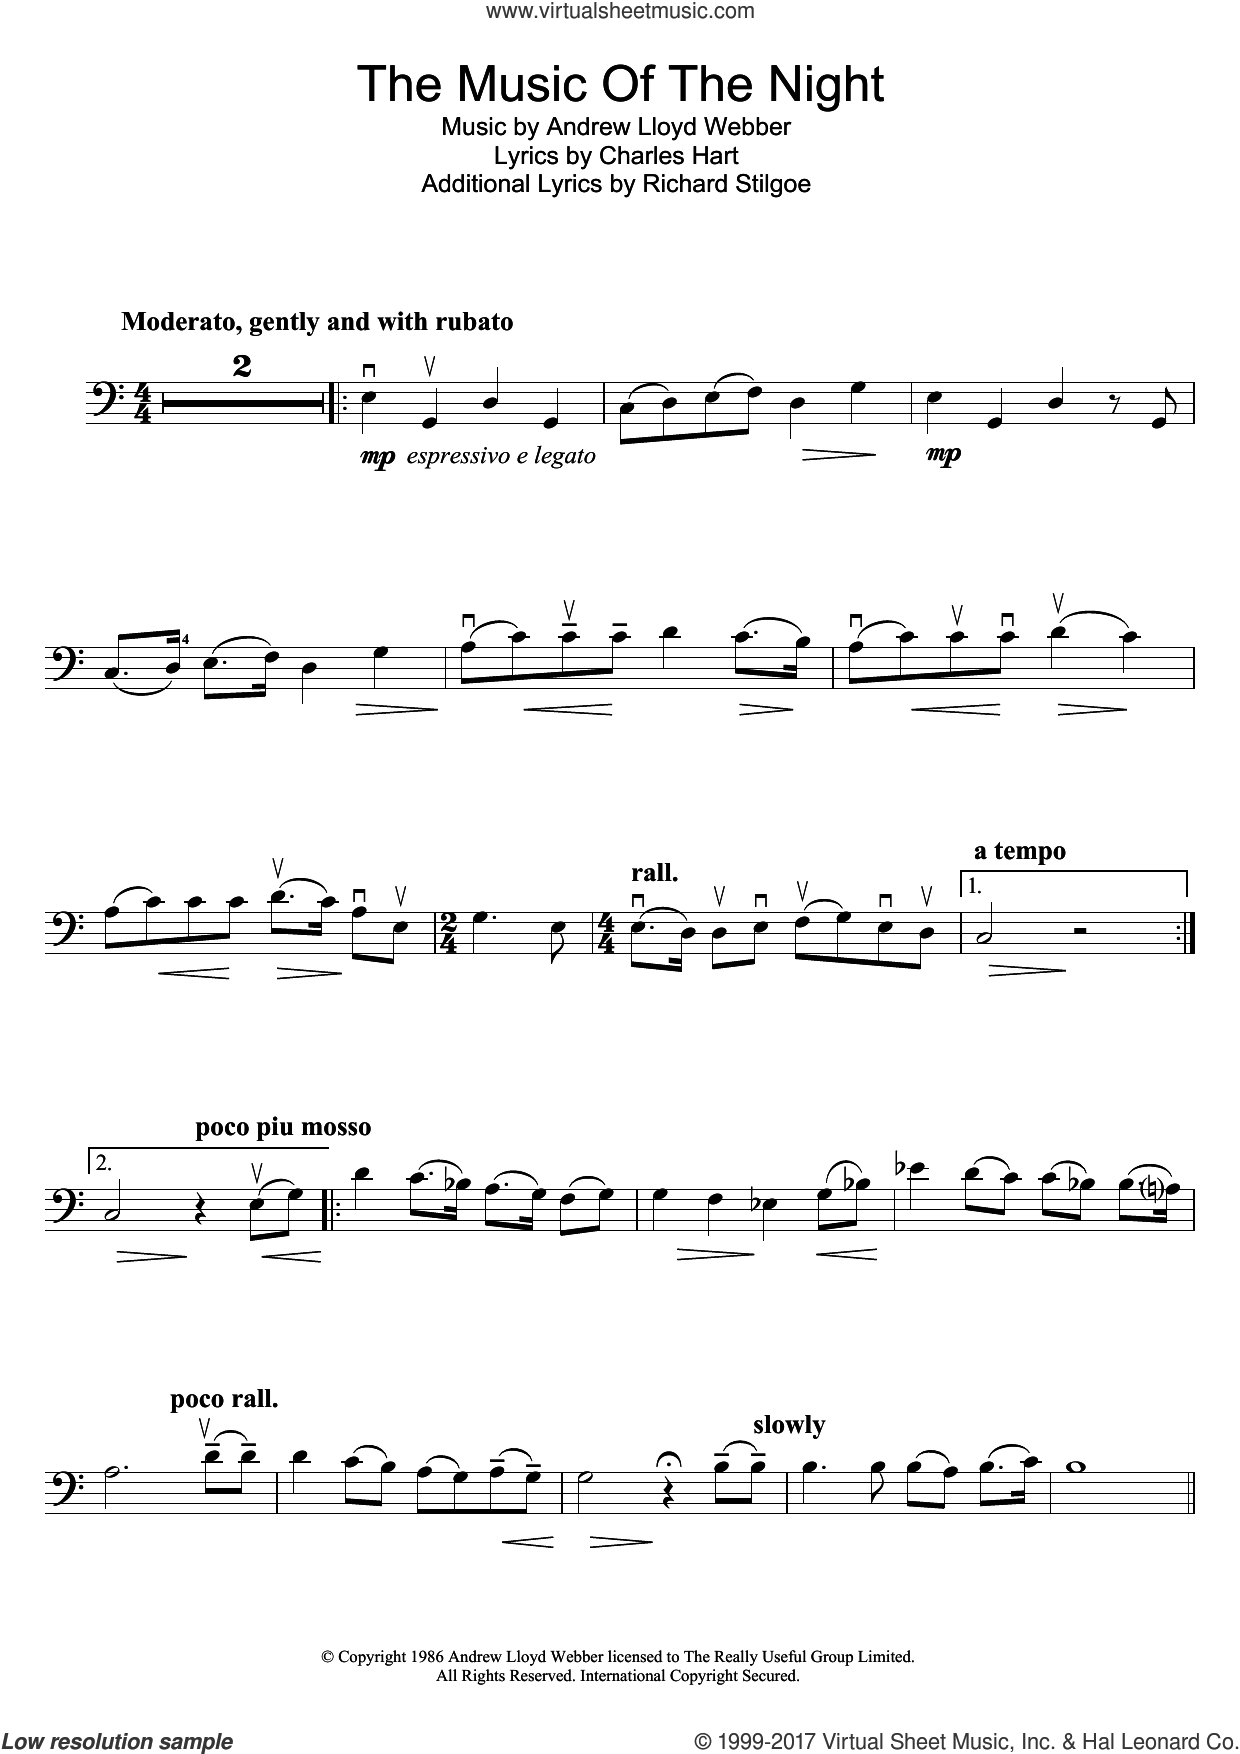 The Music Of The Night (from The Phantom Of The Opera) sheet music for cello solo by Andrew Lloyd Webber, Charles Hart and Richard Stilgoe, intermediate skill level